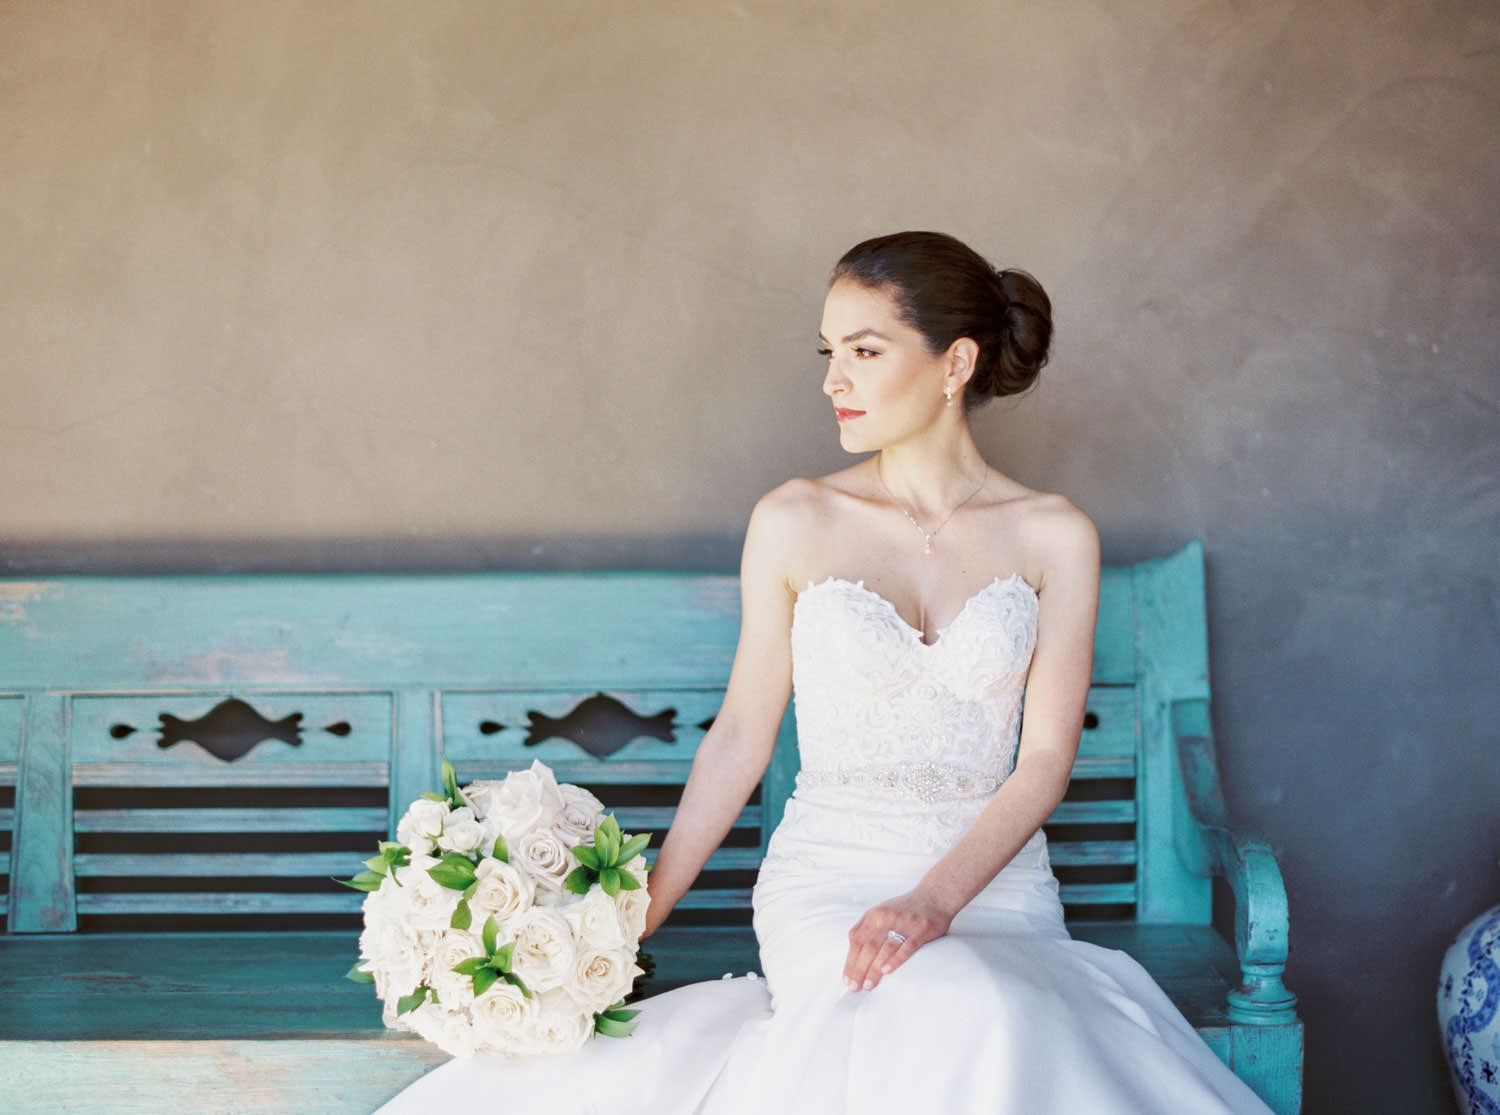 Bride on a turquoise bench captured on film, Santalux Club wedding reception, Cavin Elizabeth Photography